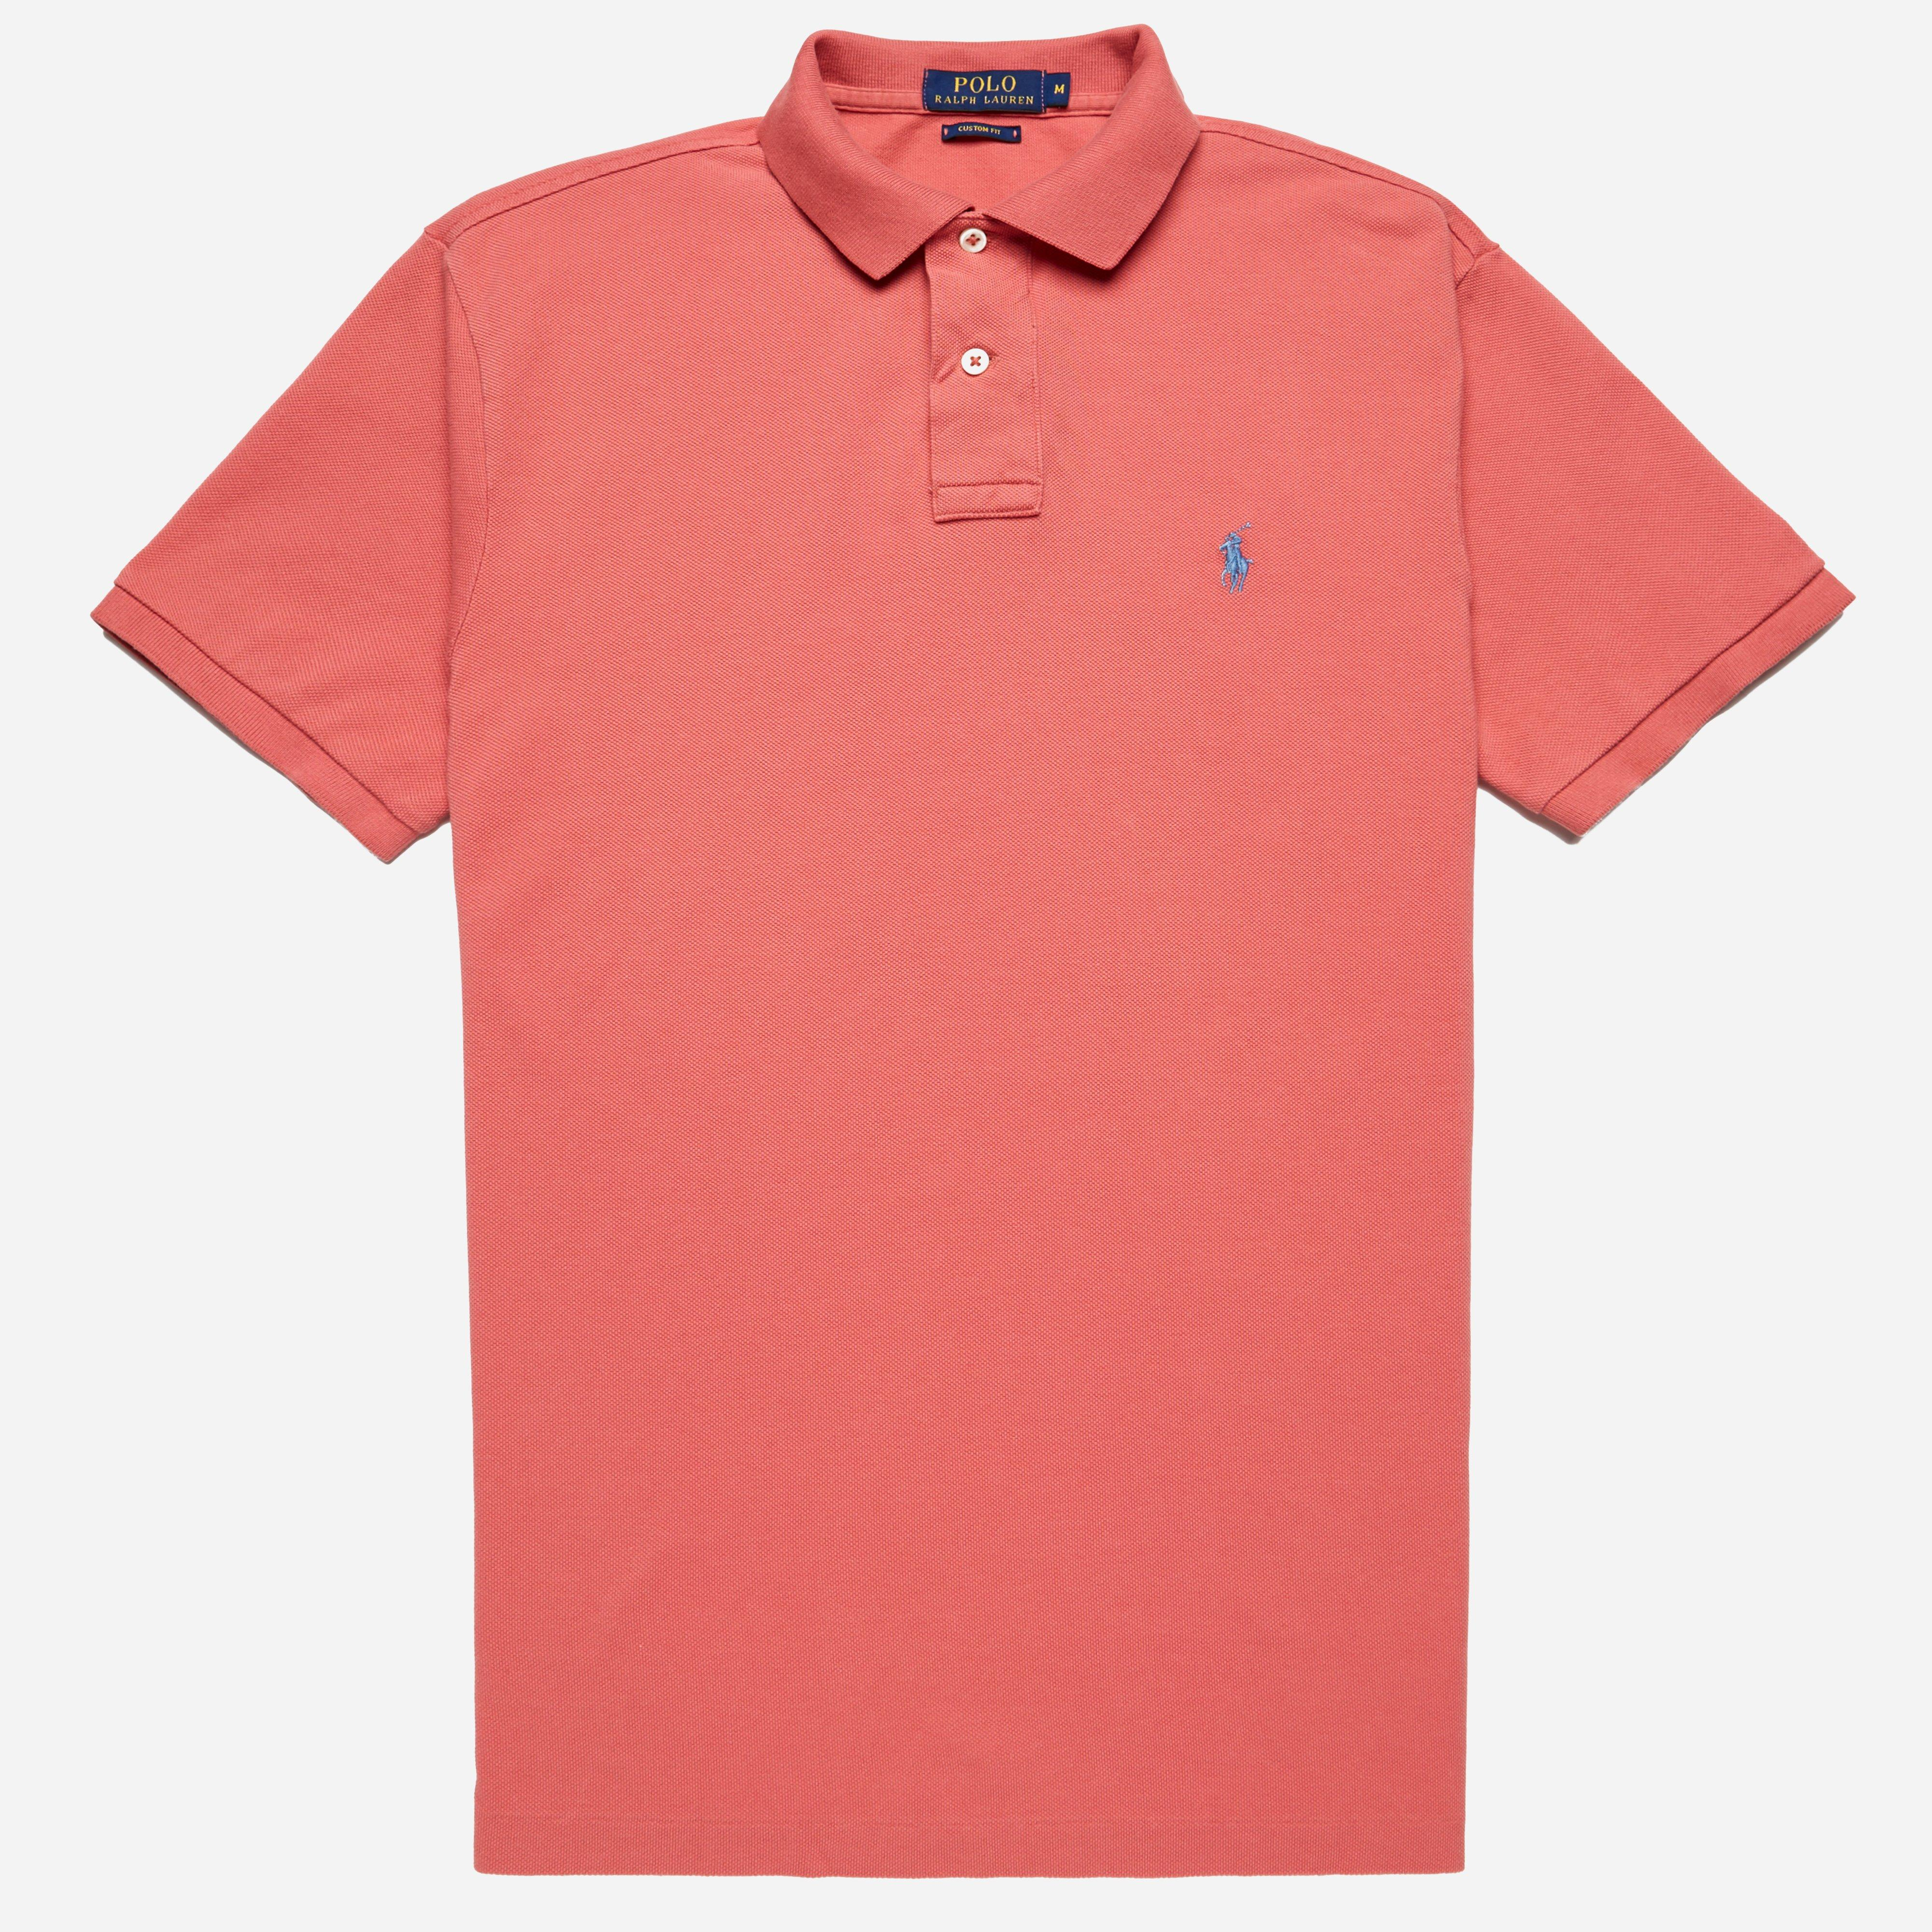 Polo Ralph Lauren Custom Fit Knitted Polo